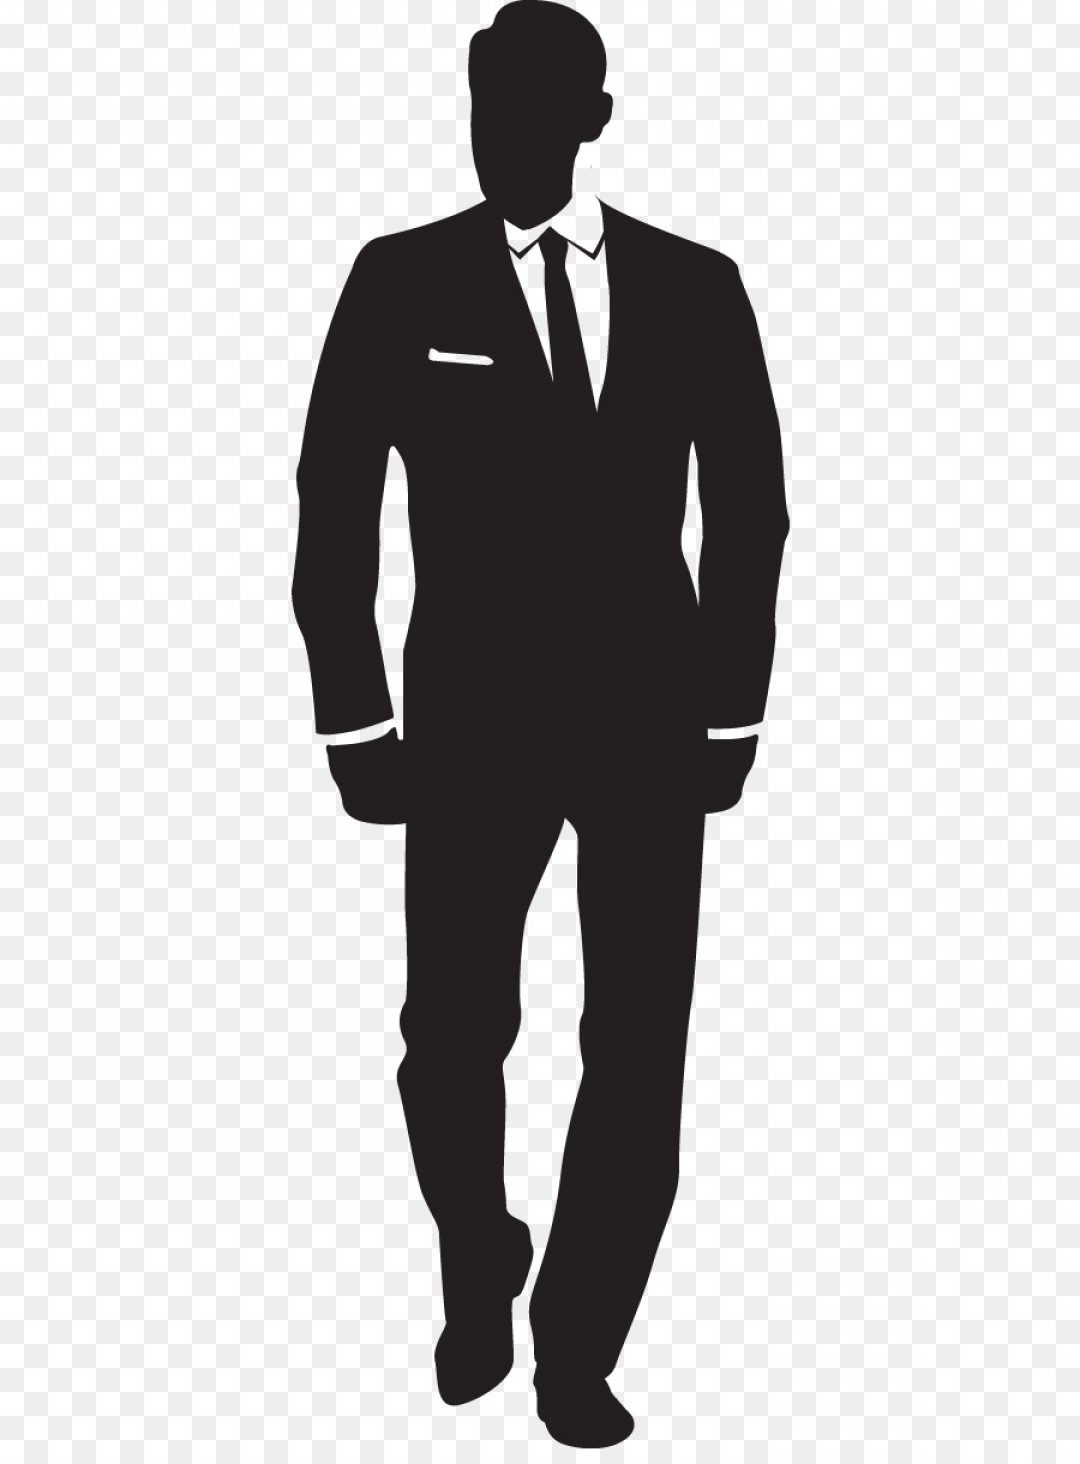 James Bond Silhouette Vector: Png Silhouette Person Clip Art James Bond